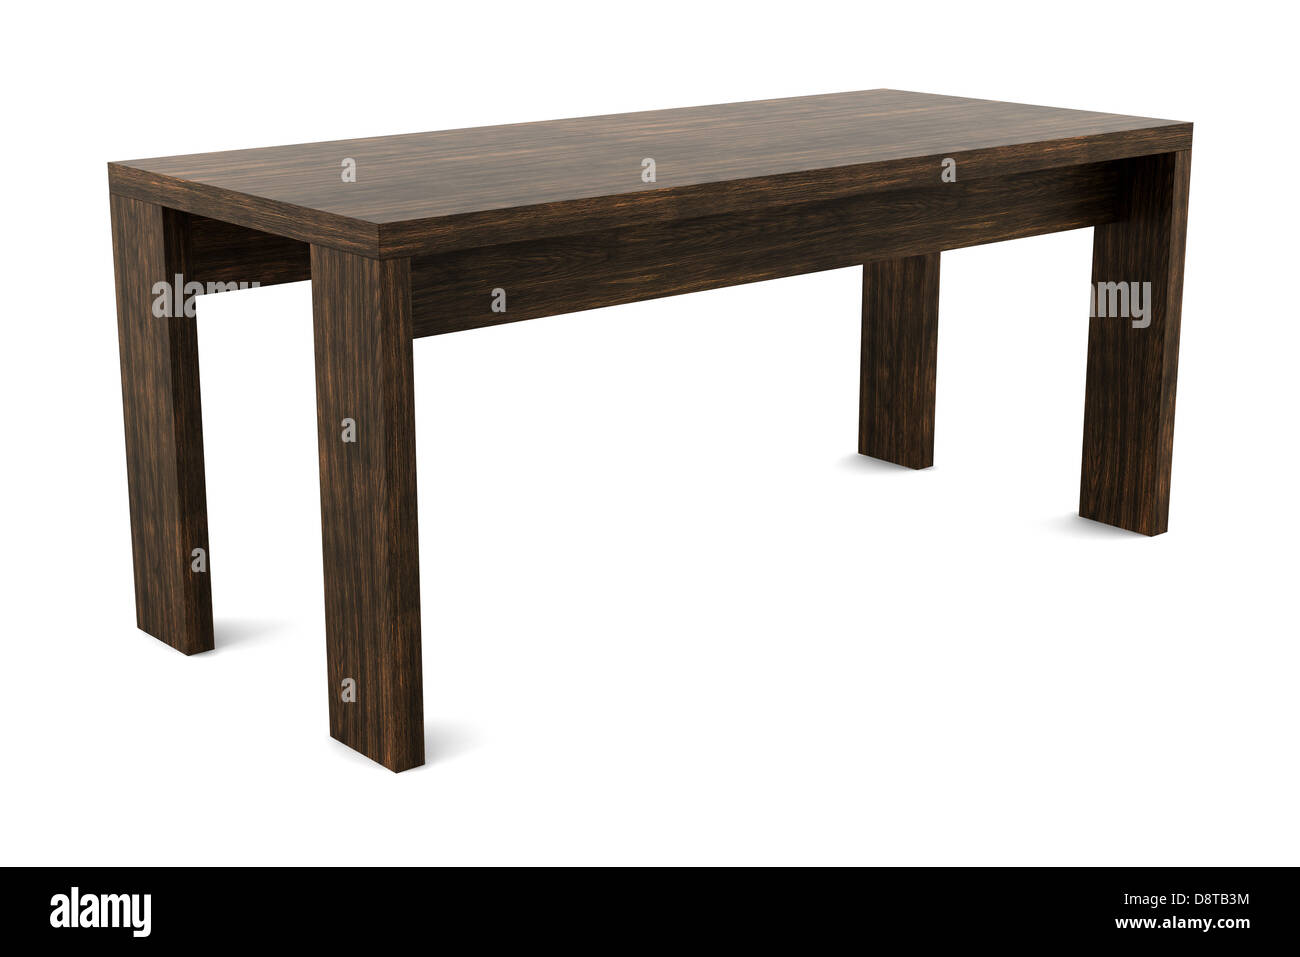 modern brown wooden table isolated on white - Stock Image